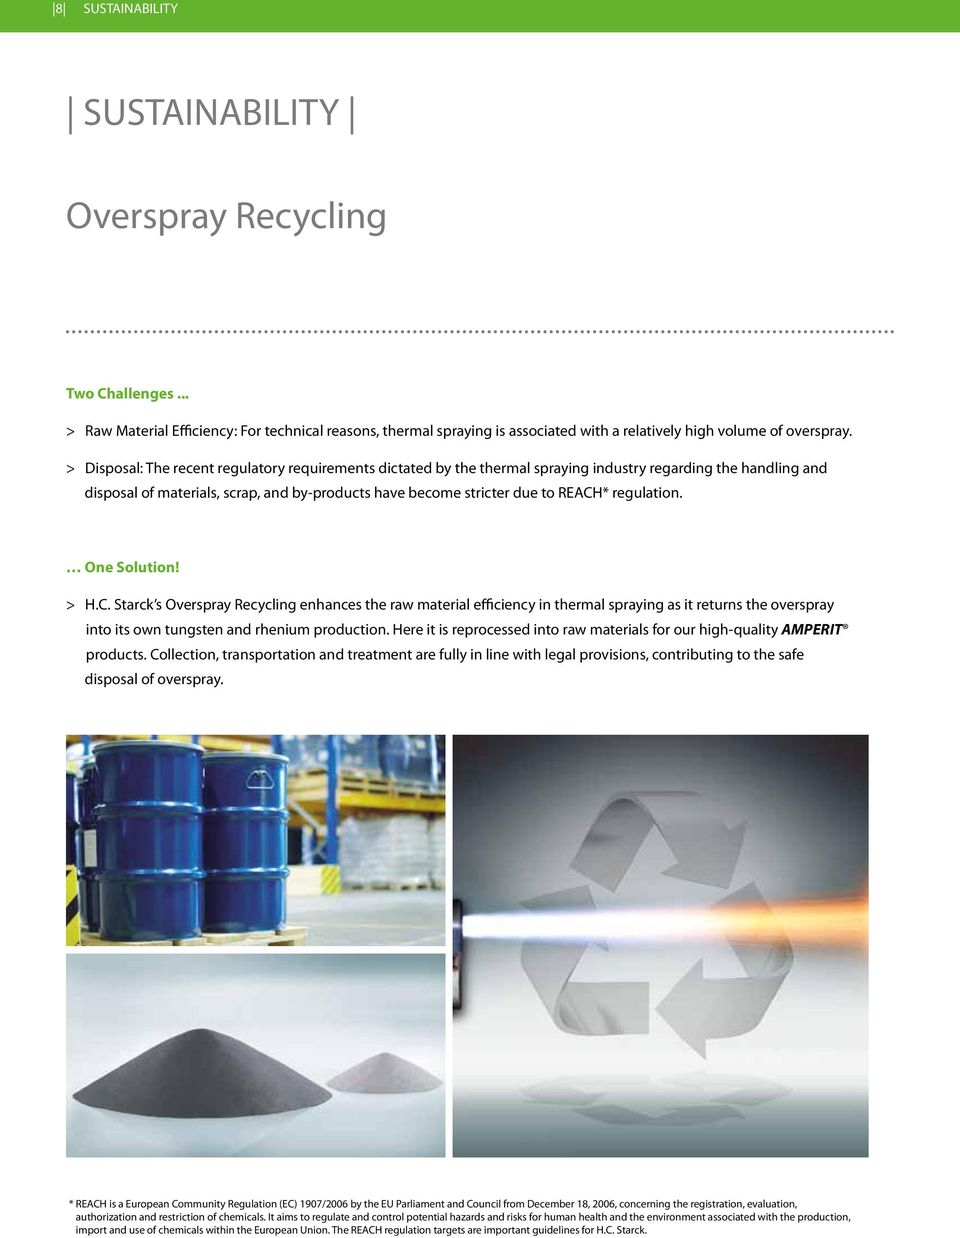 regulation. One Solution! > H.C. Starck s Overspray Recycling enhances the raw material efficiency in thermal spraying as it returns the overspray into its own tungsten and rhenium production.